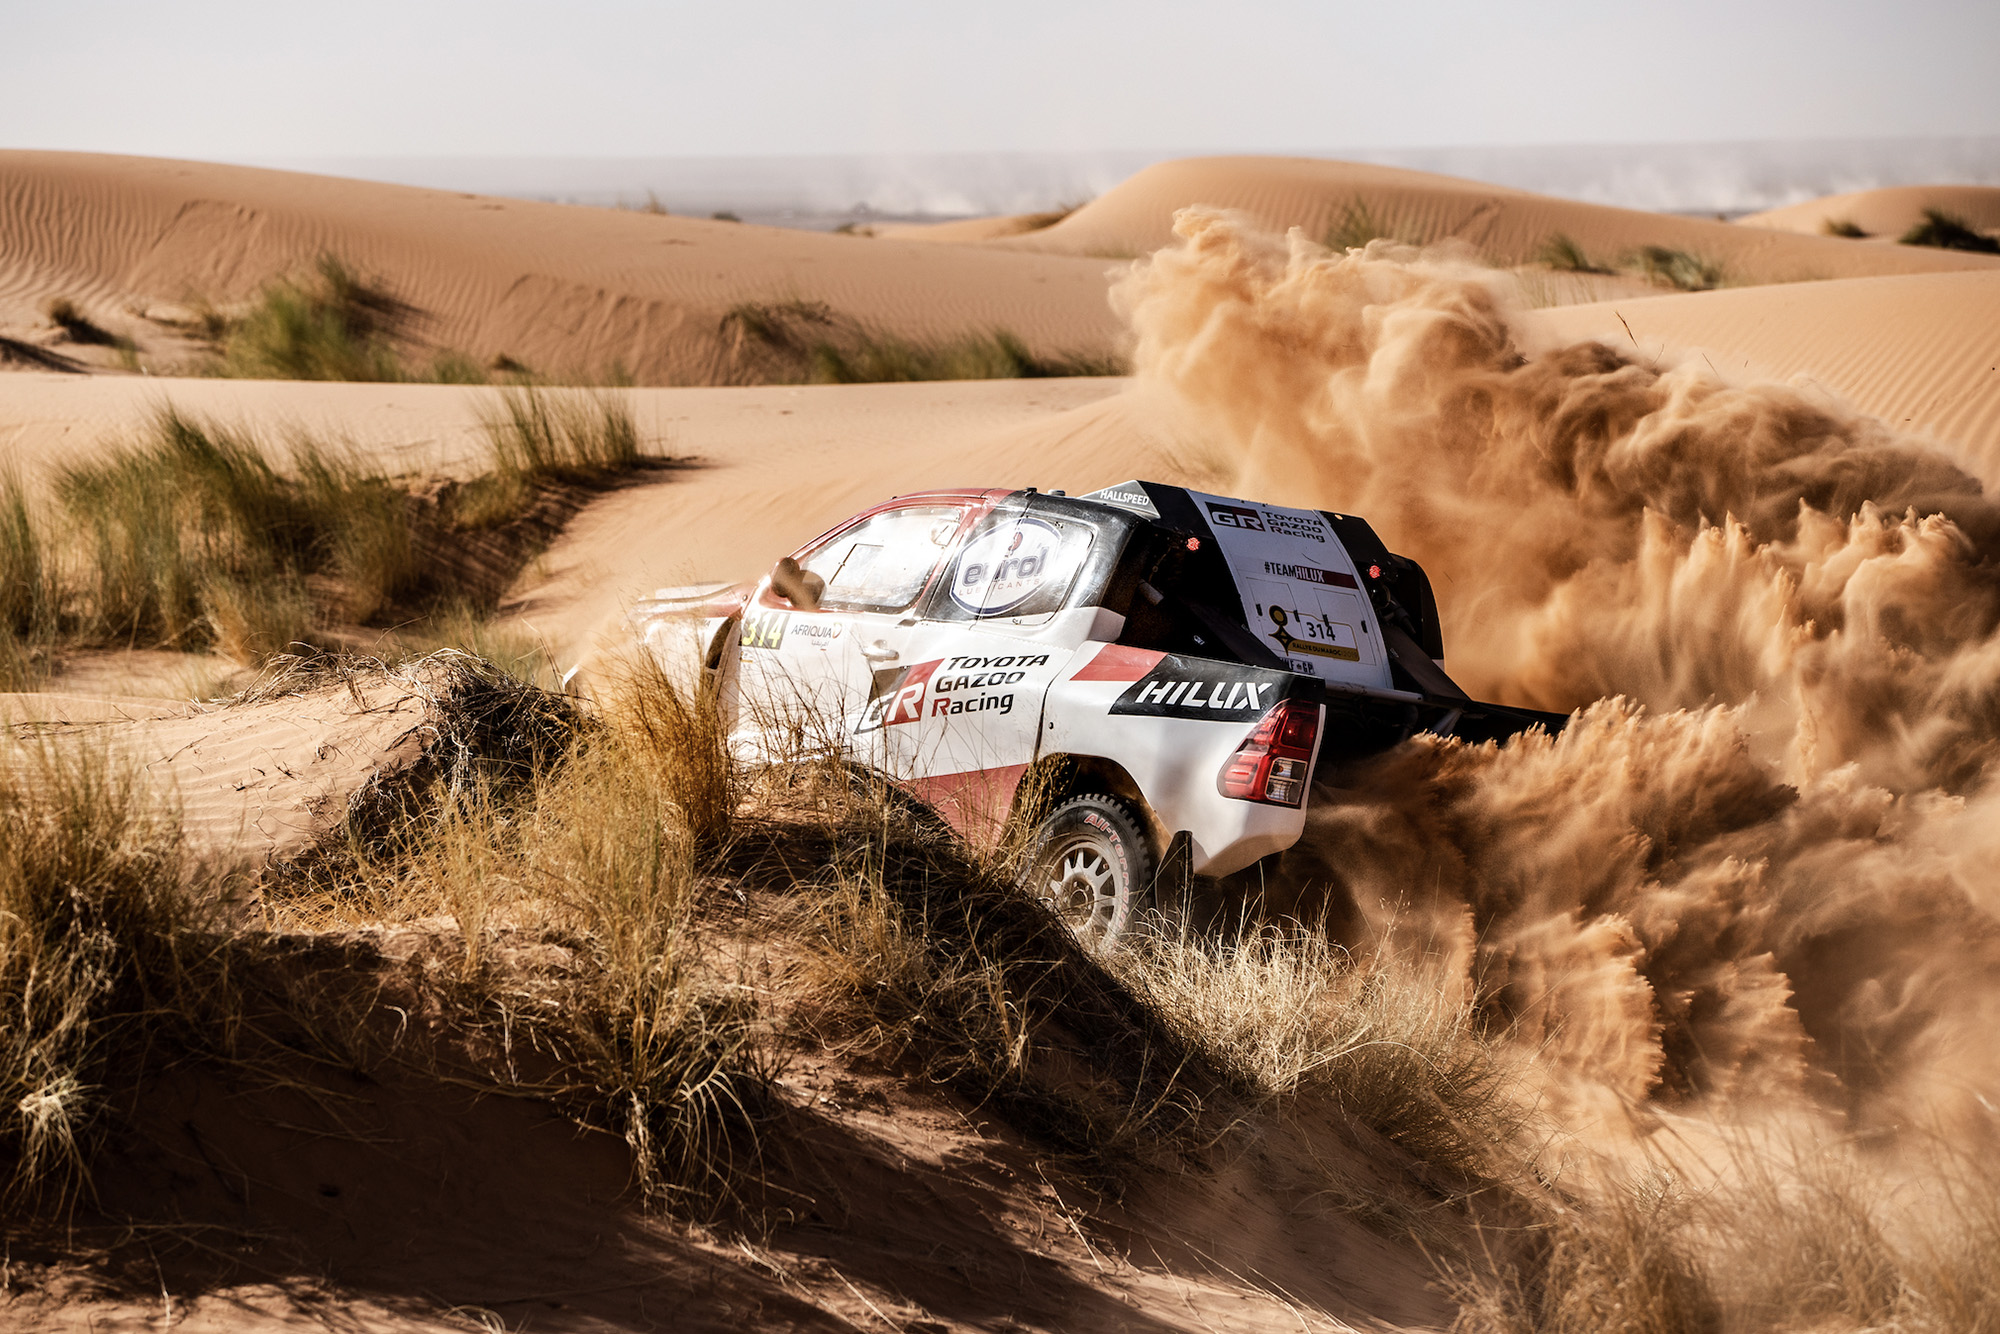 Fernando Alonso's Dakar-specification Toyota Hilux churning up sand during testing